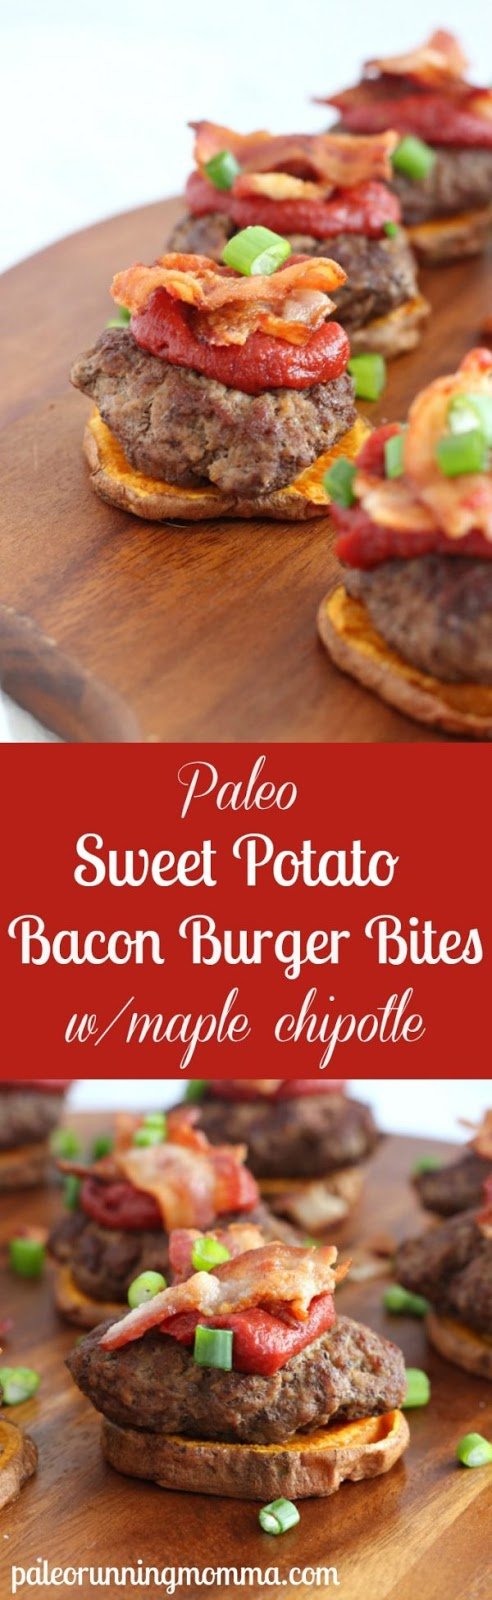 Sweet Potato Bacon Burger Bites with Maple Chipotle